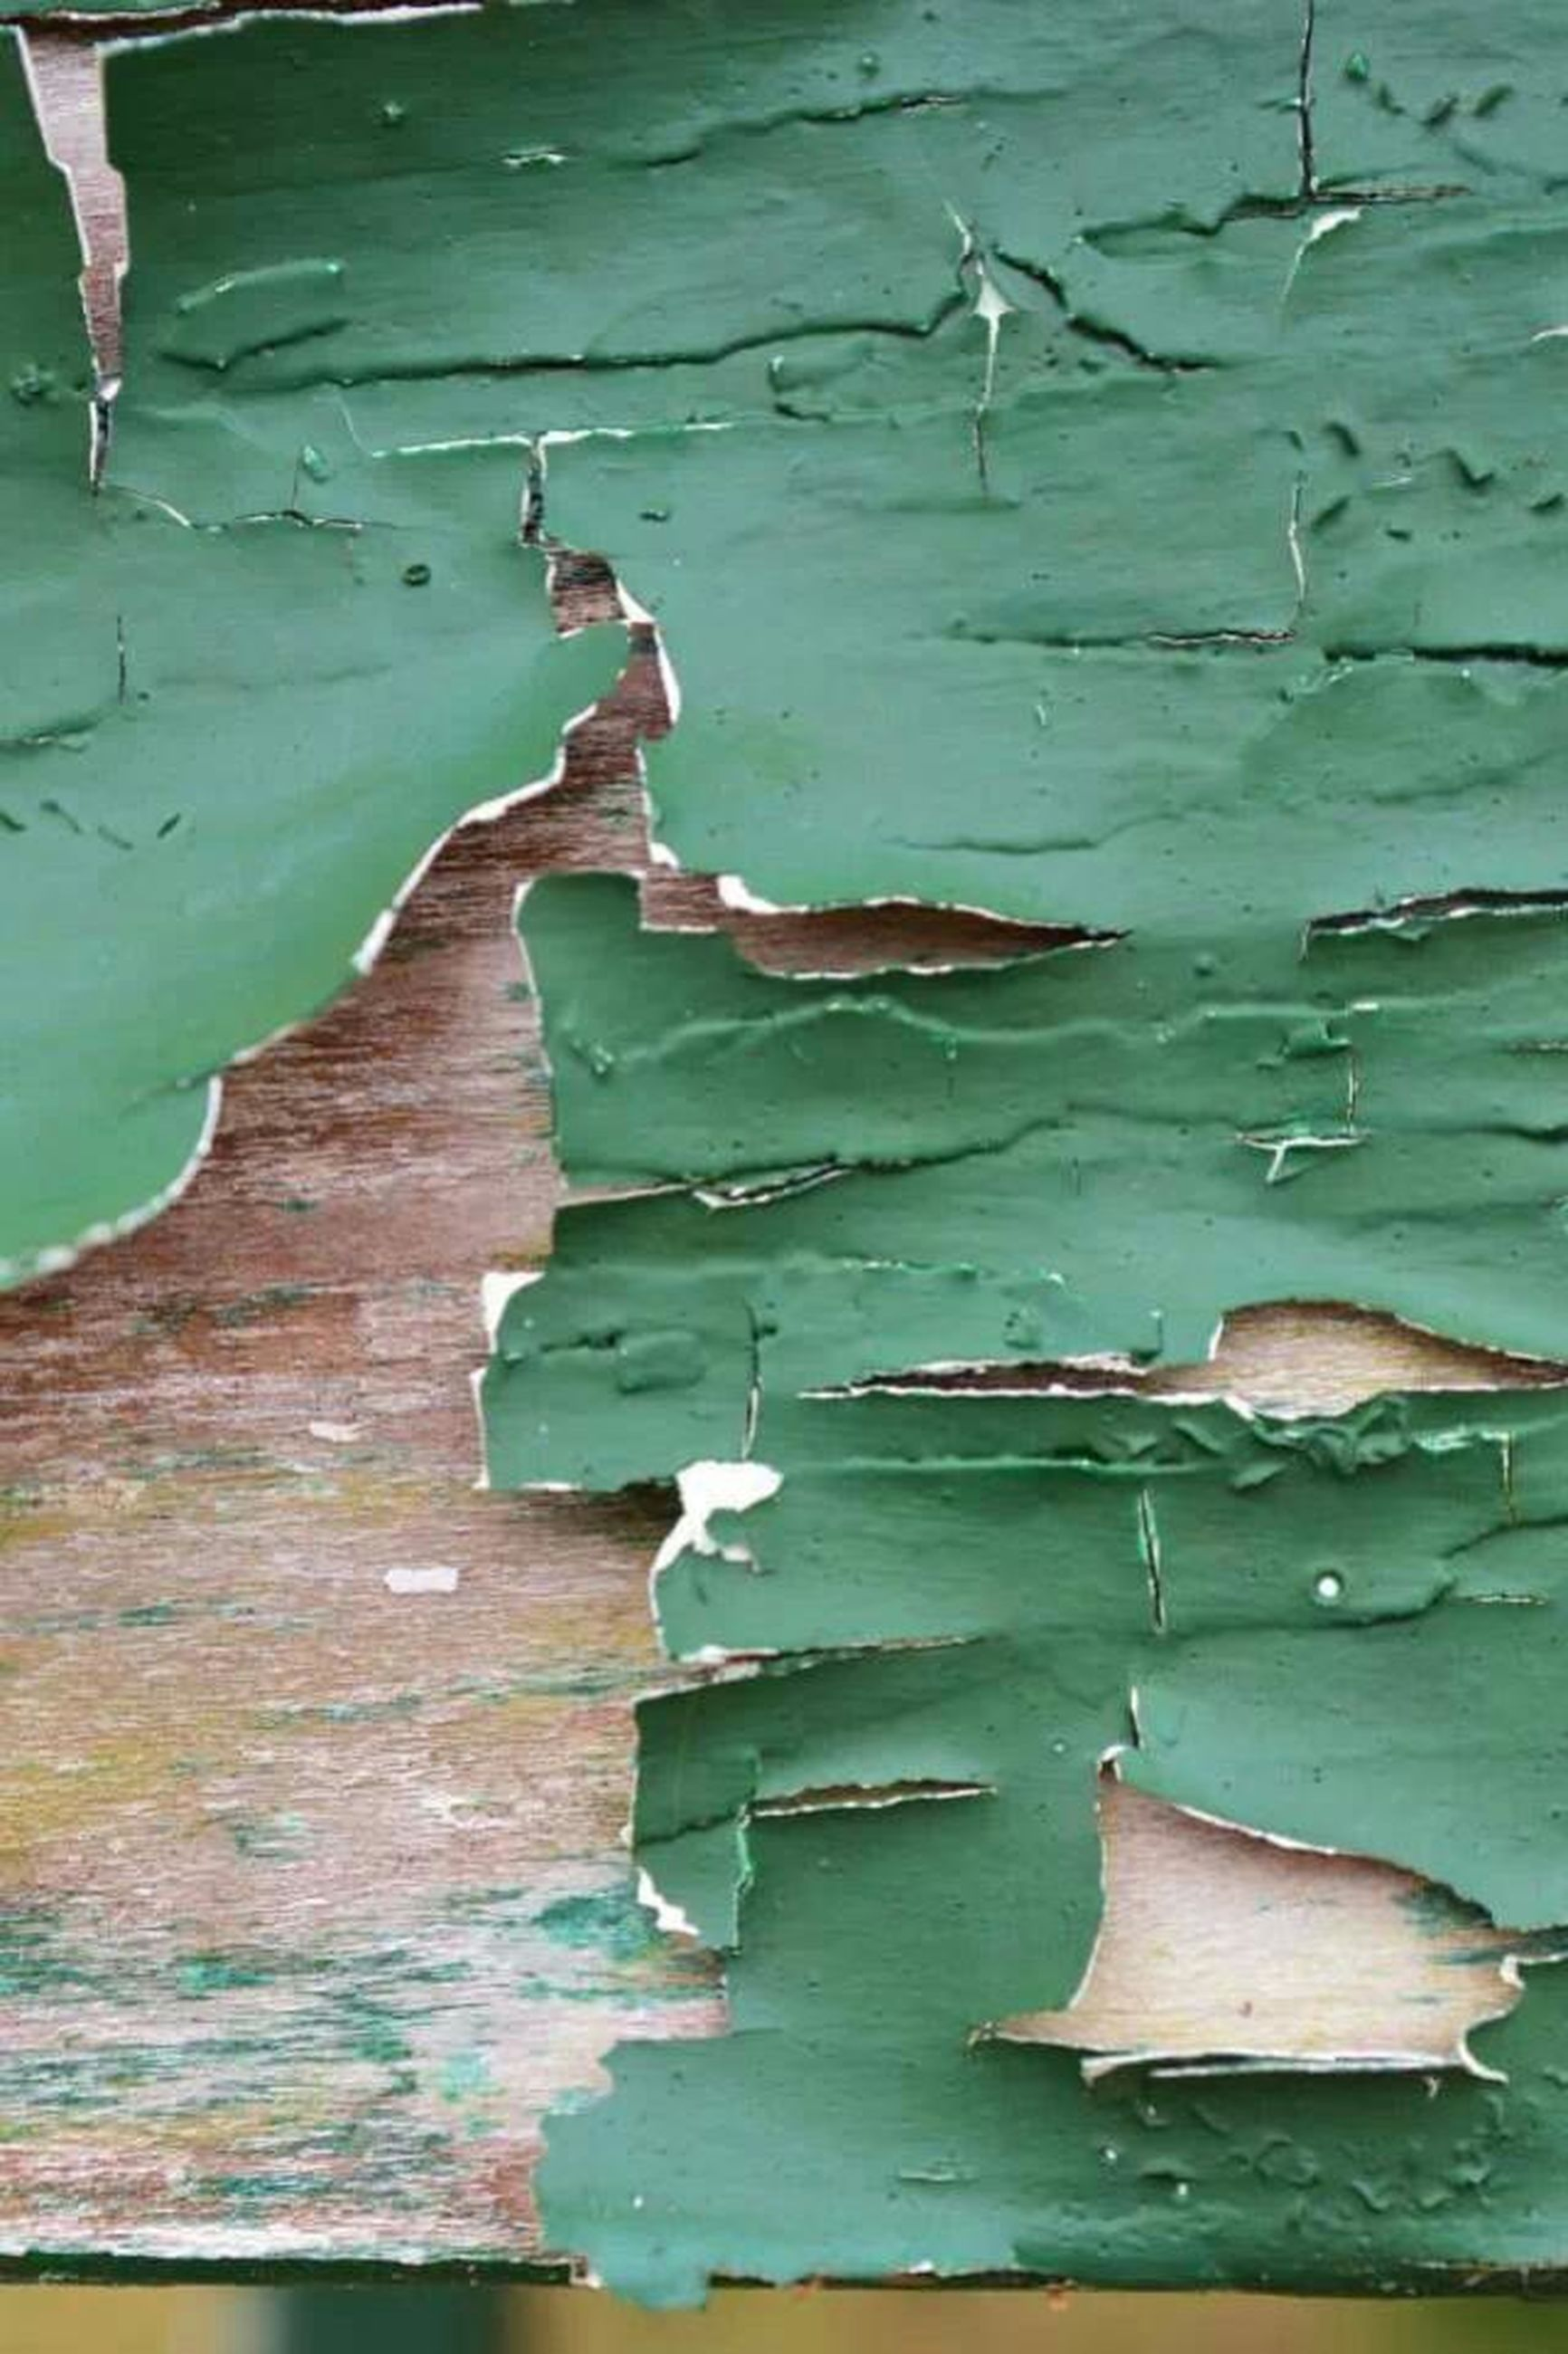 leaf, water, green color, blue, wood - material, day, high angle view, outdoors, wall, built structure, weathered, reflection, wall - building feature, nature, no people, wildlife, animal themes, close-up, plank, pond